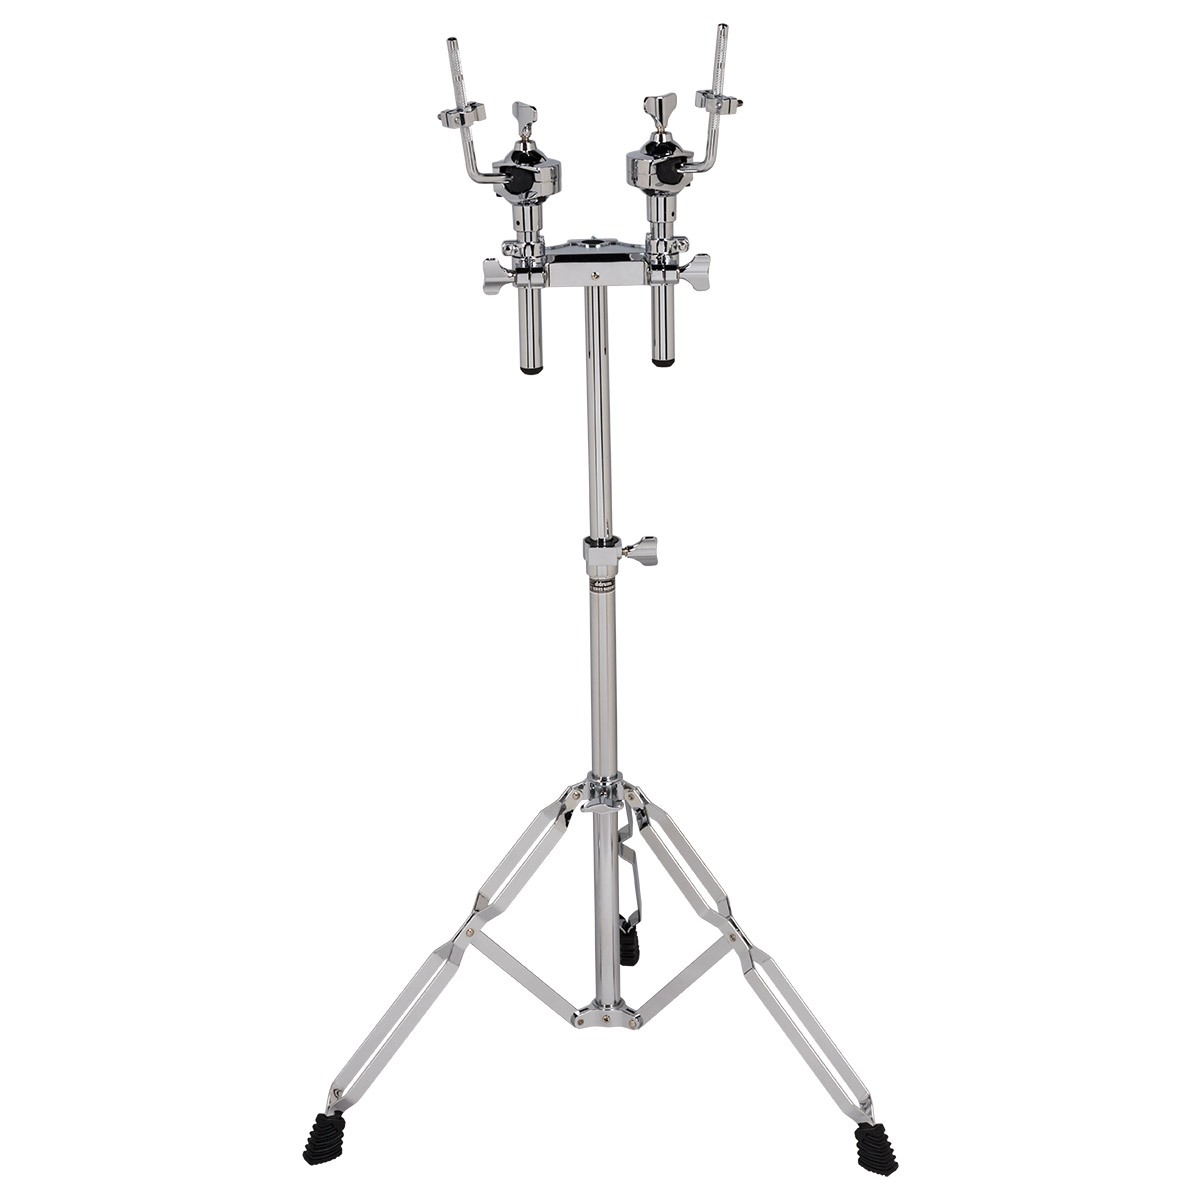 dDrum RX Series Dual Rack Tom Stand Mount with Double Braced Legs (RXDTS)